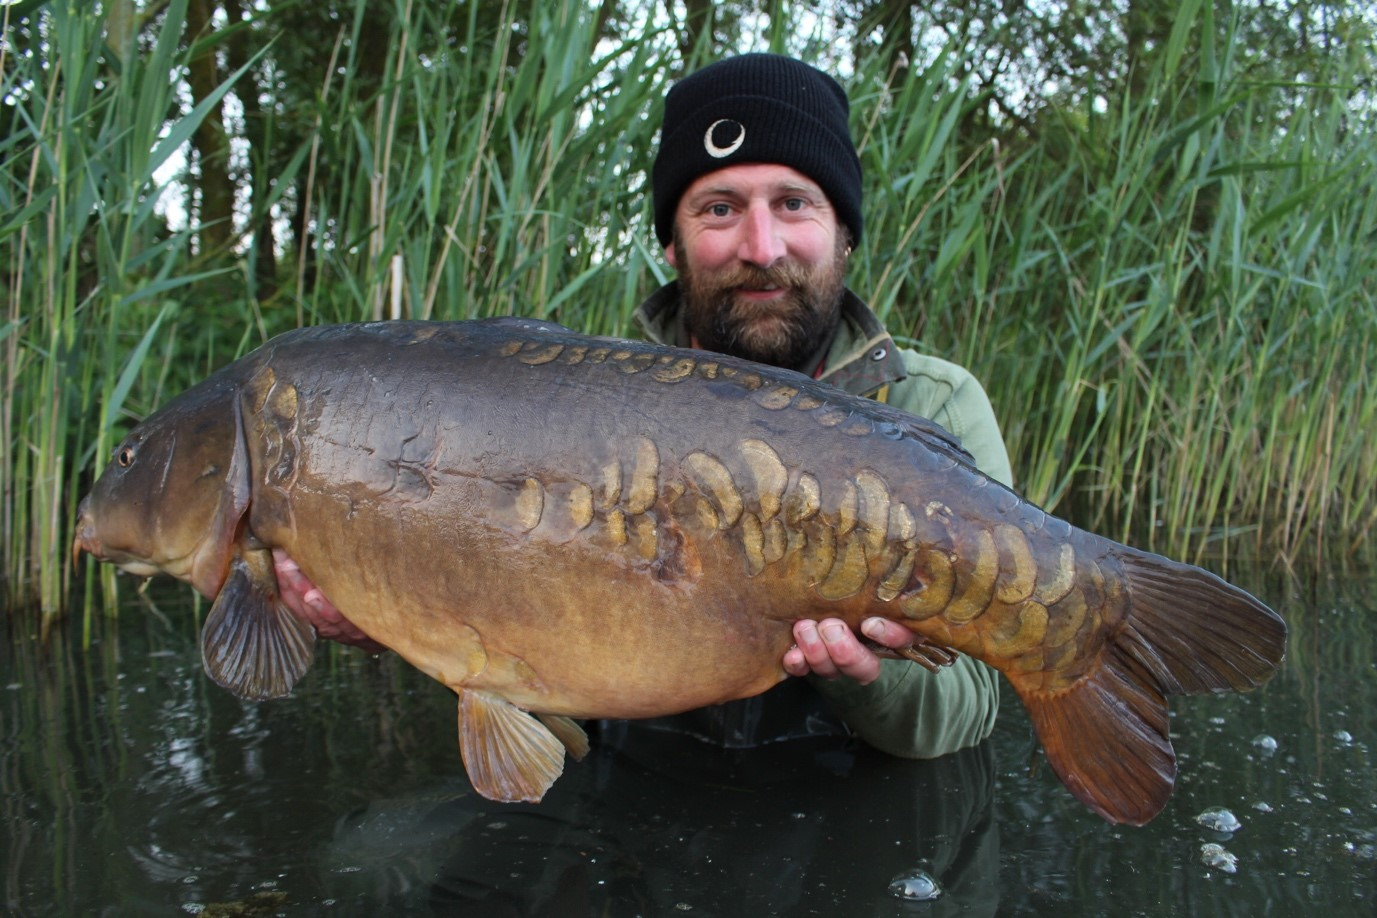 Cleverly Fisheries Top Lake Carp Sparky�s Sister